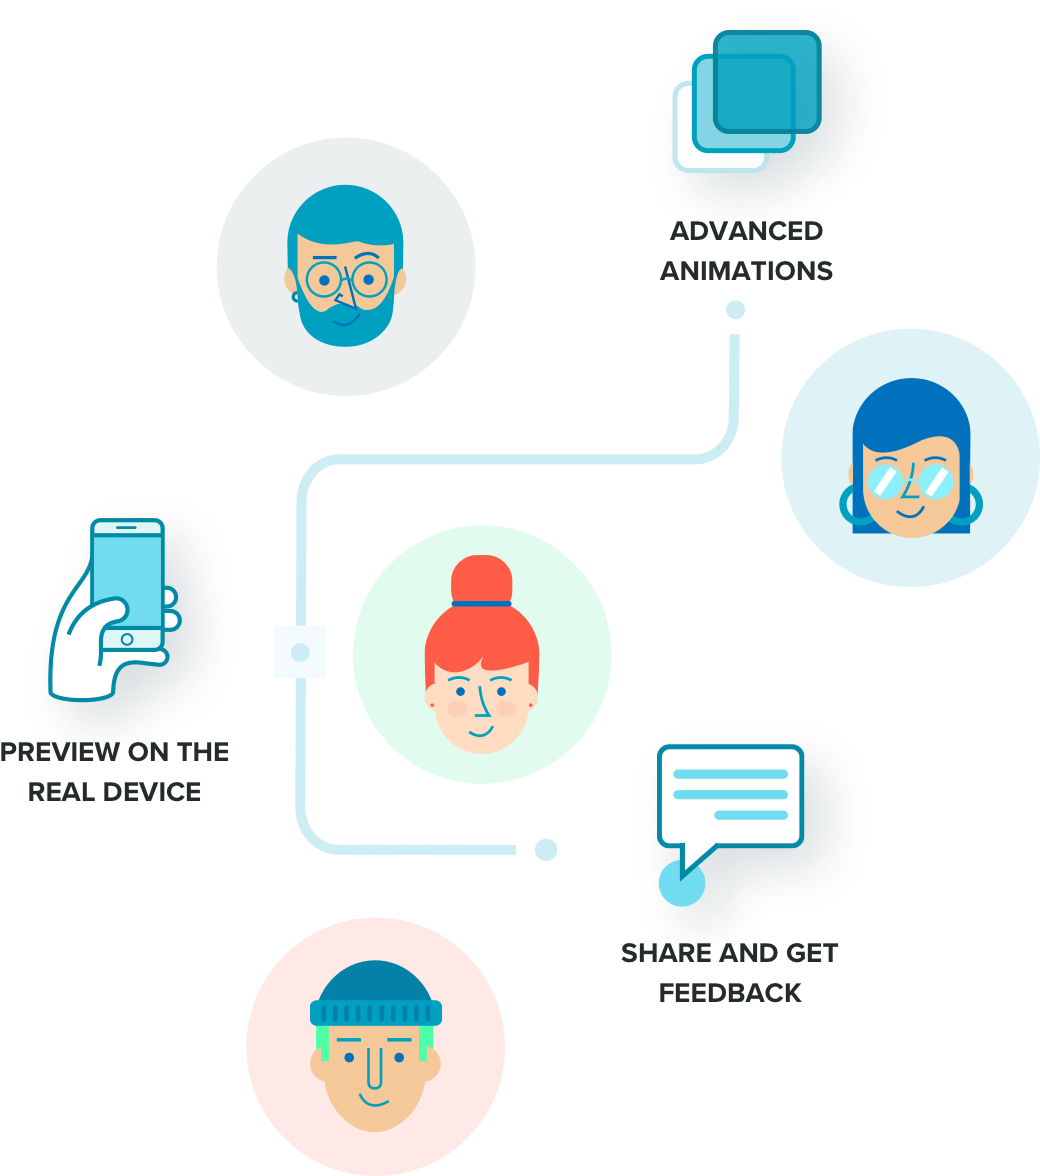 Illustration of people showing advanced animations, preview on the real device, share and get feedback